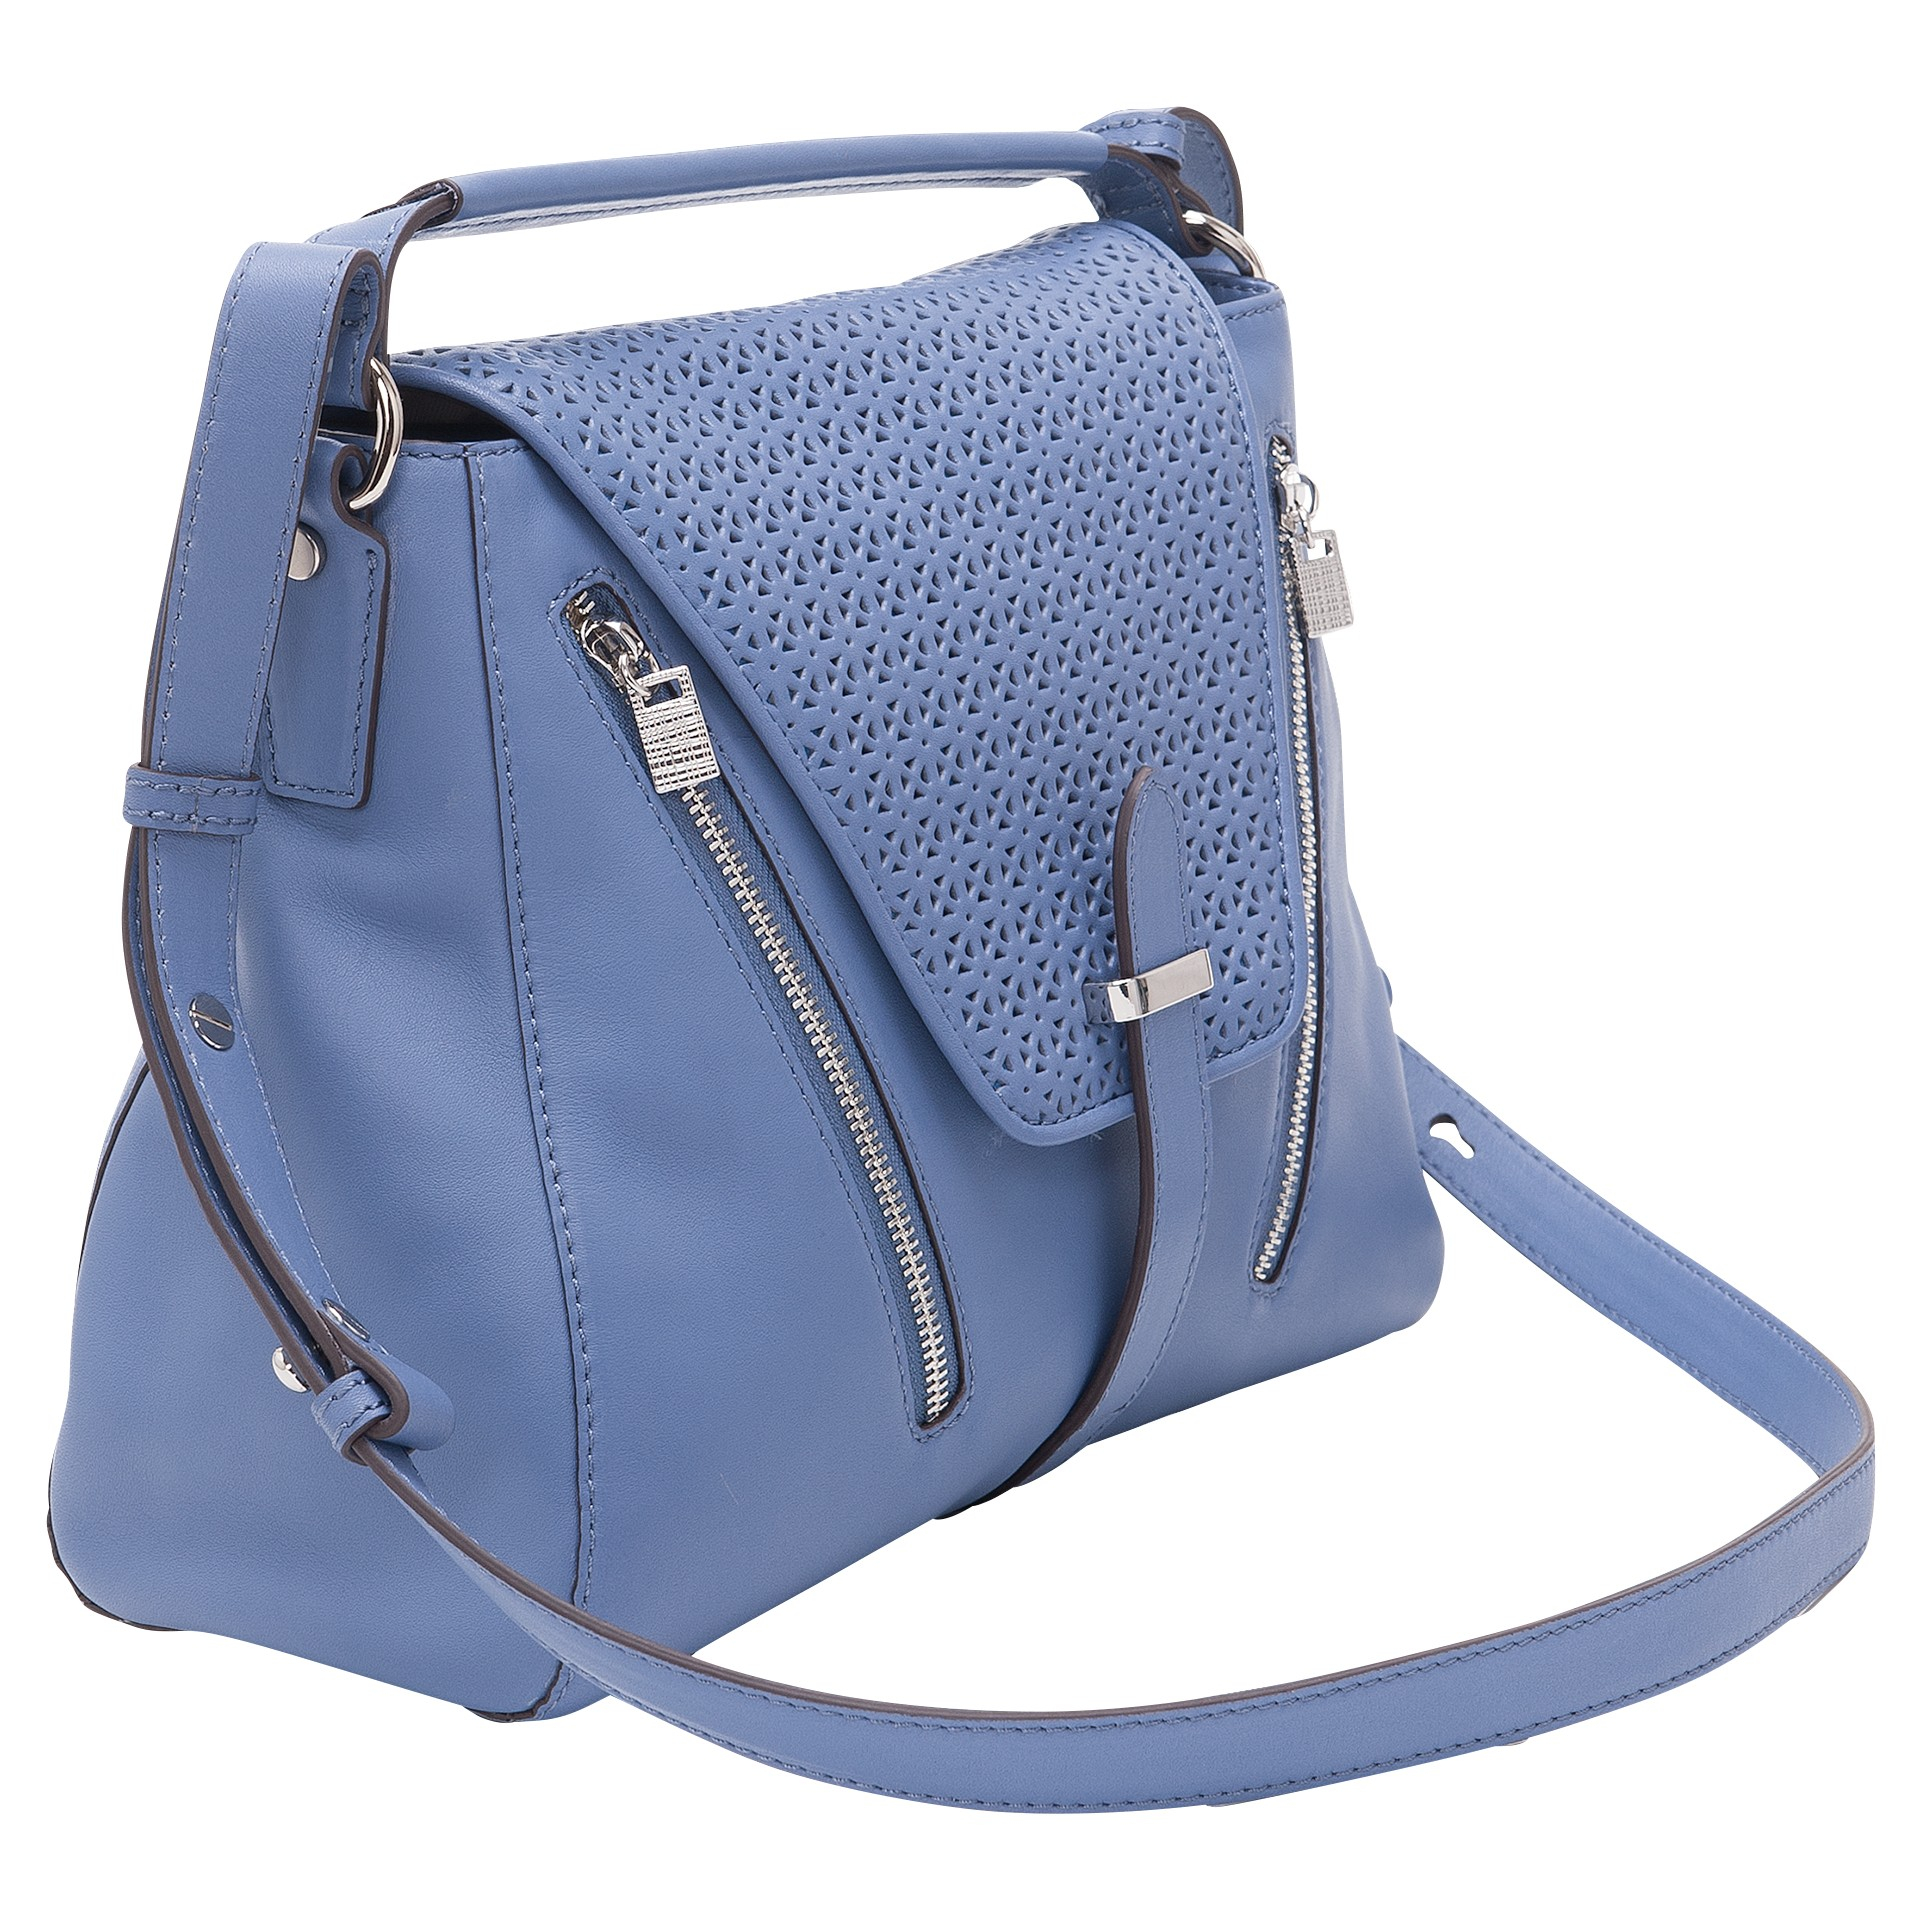 French Connection Zoe Tote Handbag in Blue Cornflower (Blue)